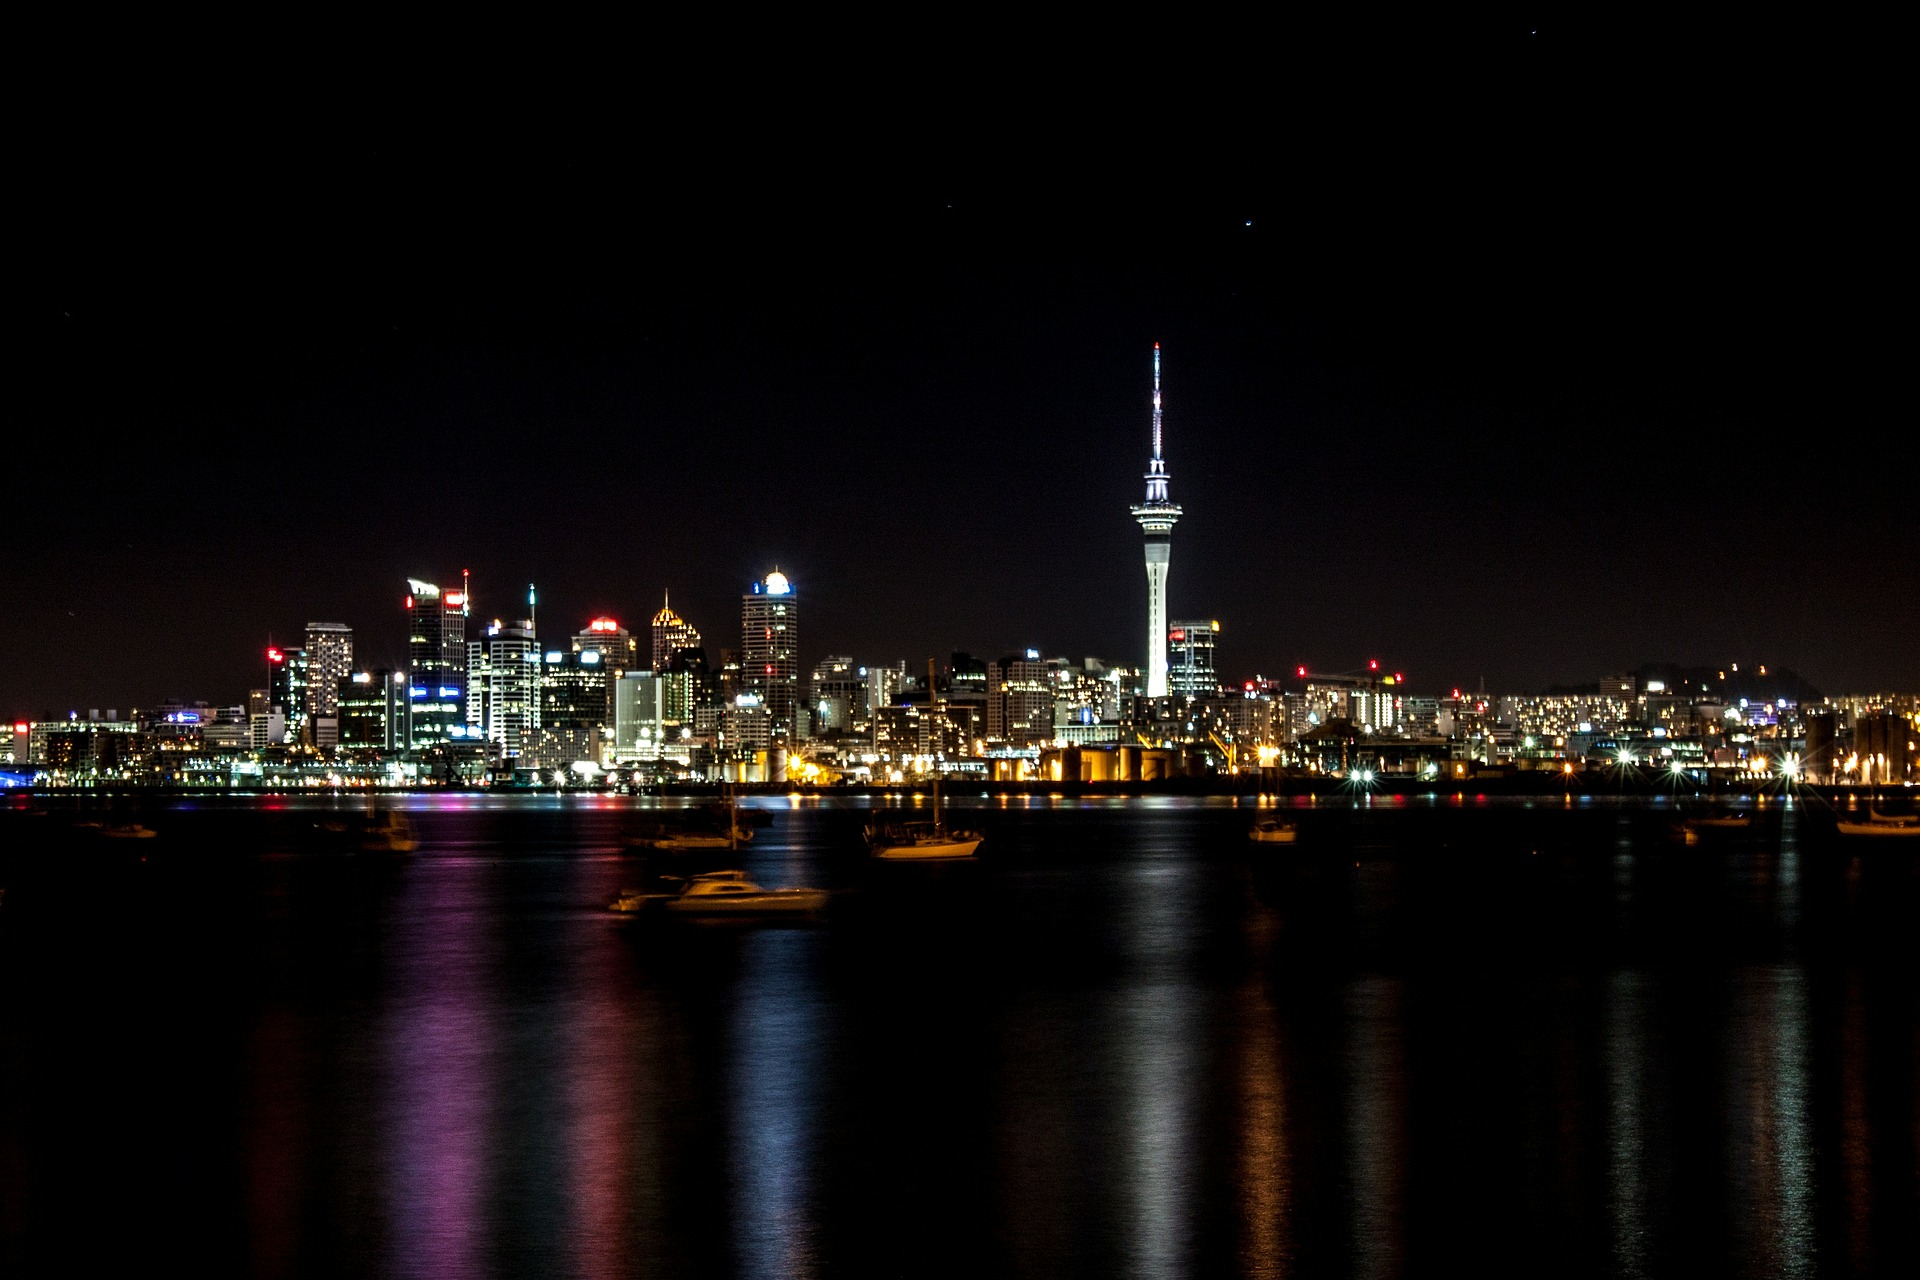 Auckland_by_night_CC0.jpg?1545815650